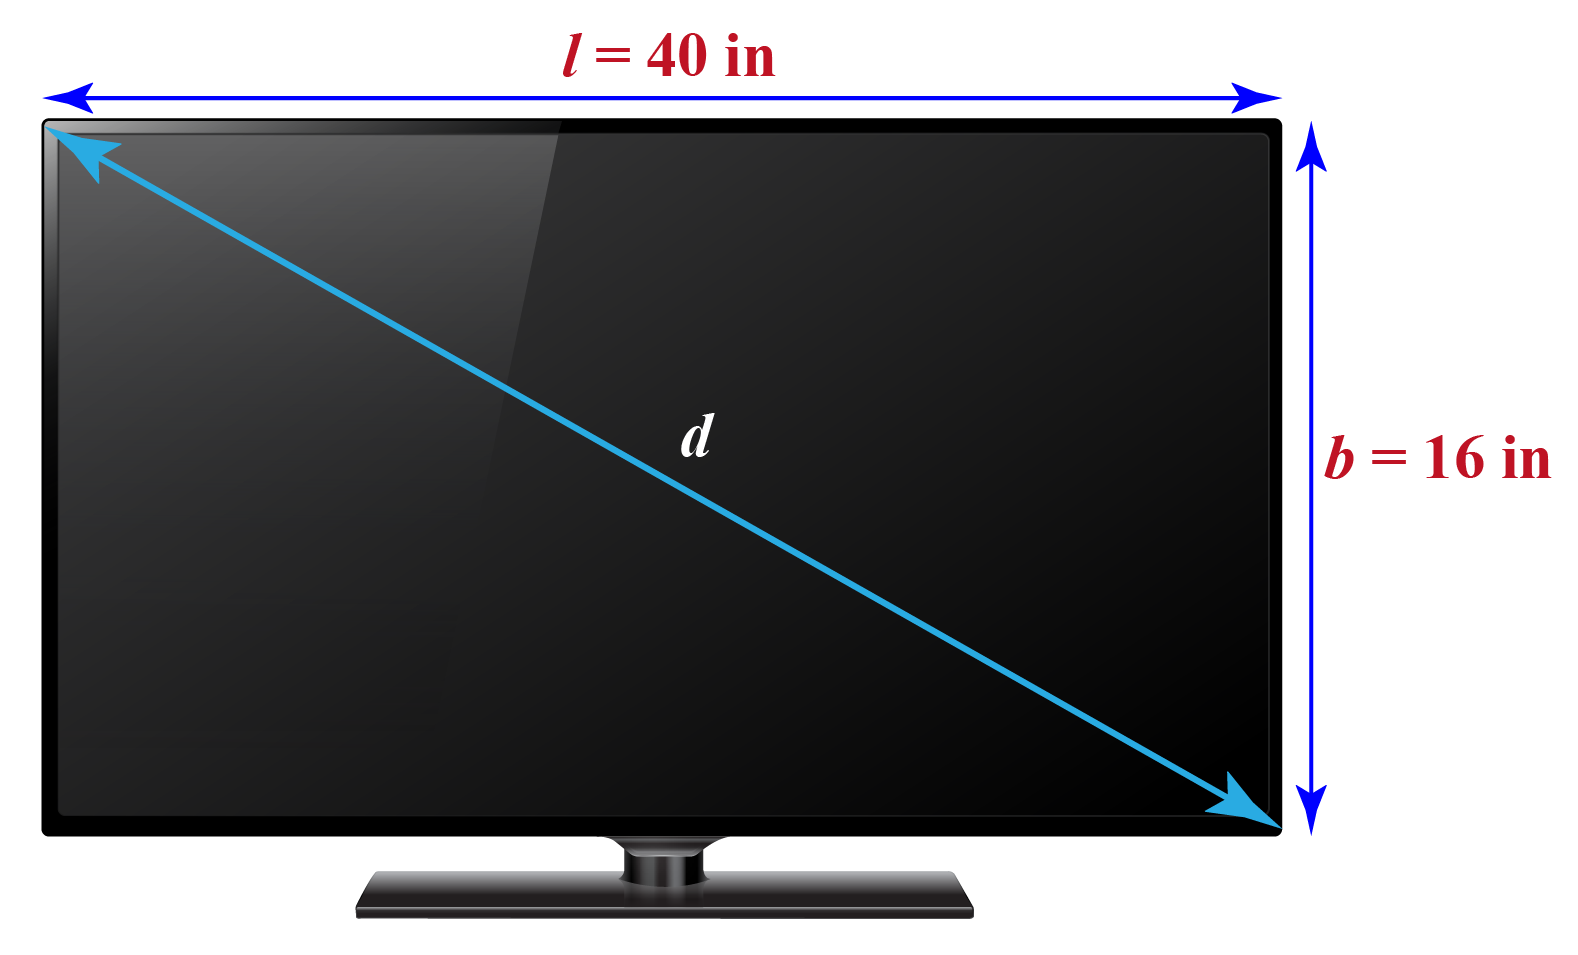 Diagonal of a rectangle example: a TV with length 40 inches, breadth 16 inches and diagonal d.